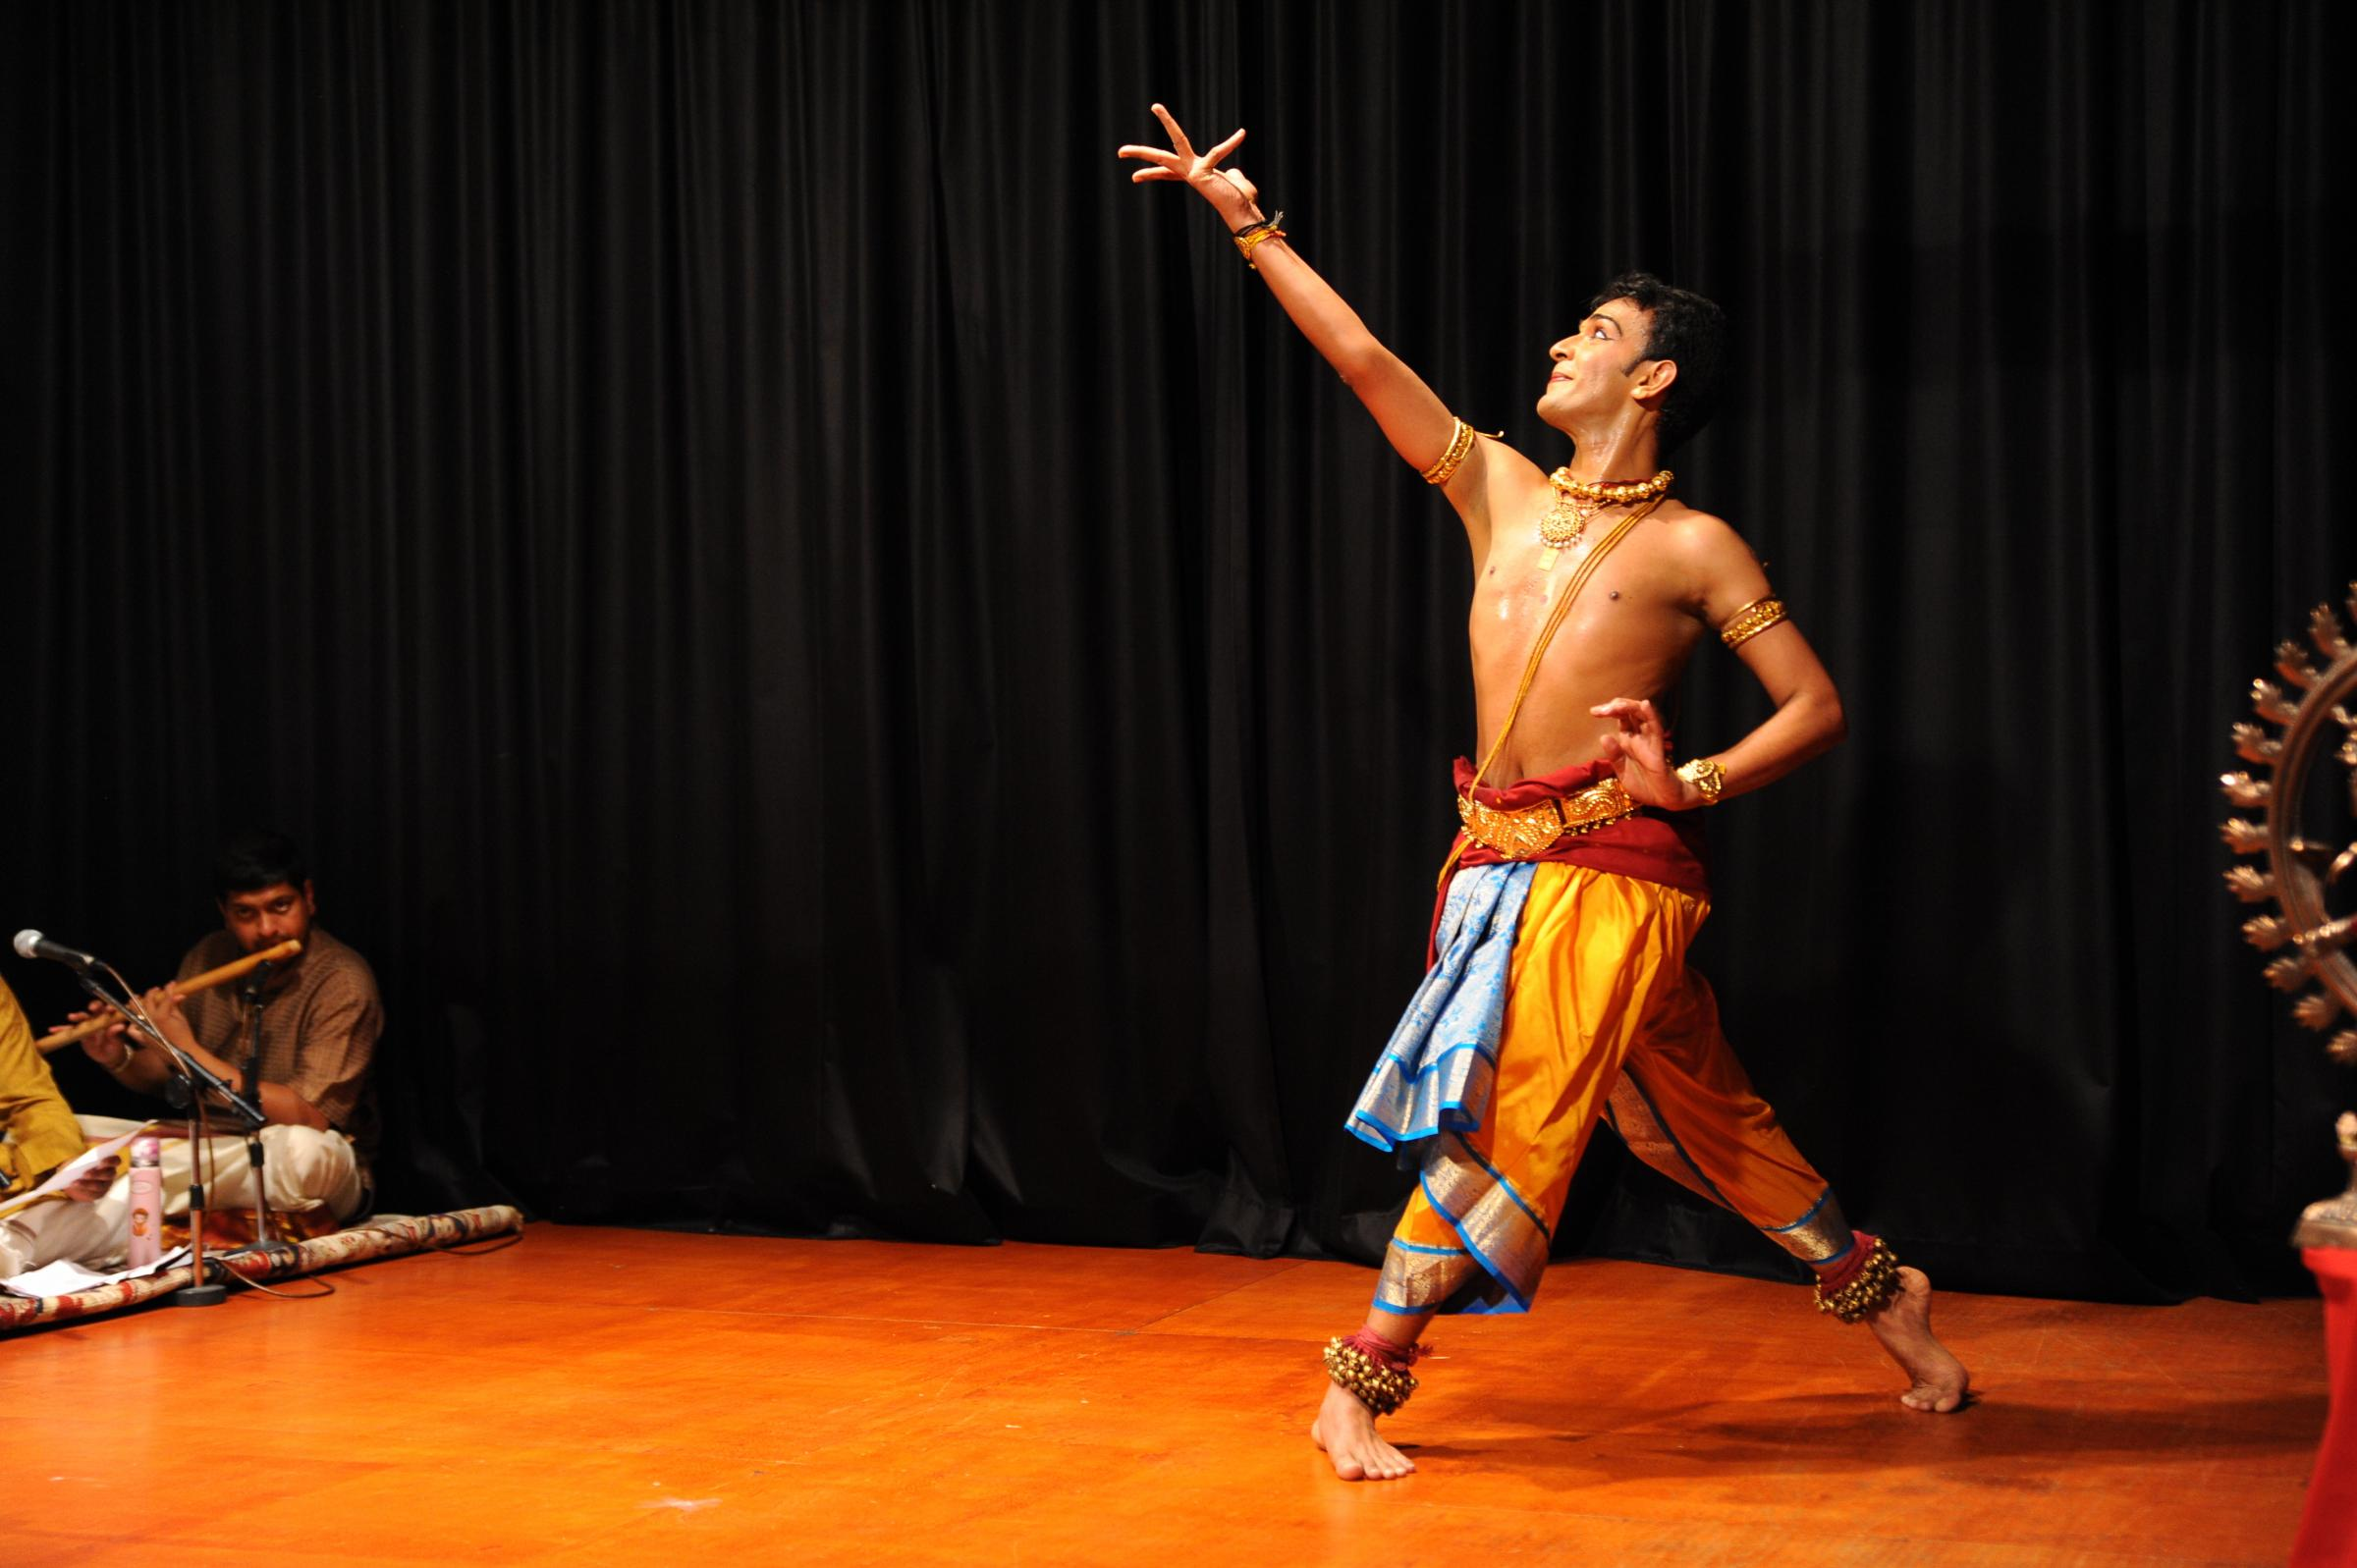 Dance Discoveries is one of the events celebrating Kala Sangam's 25th anniversary